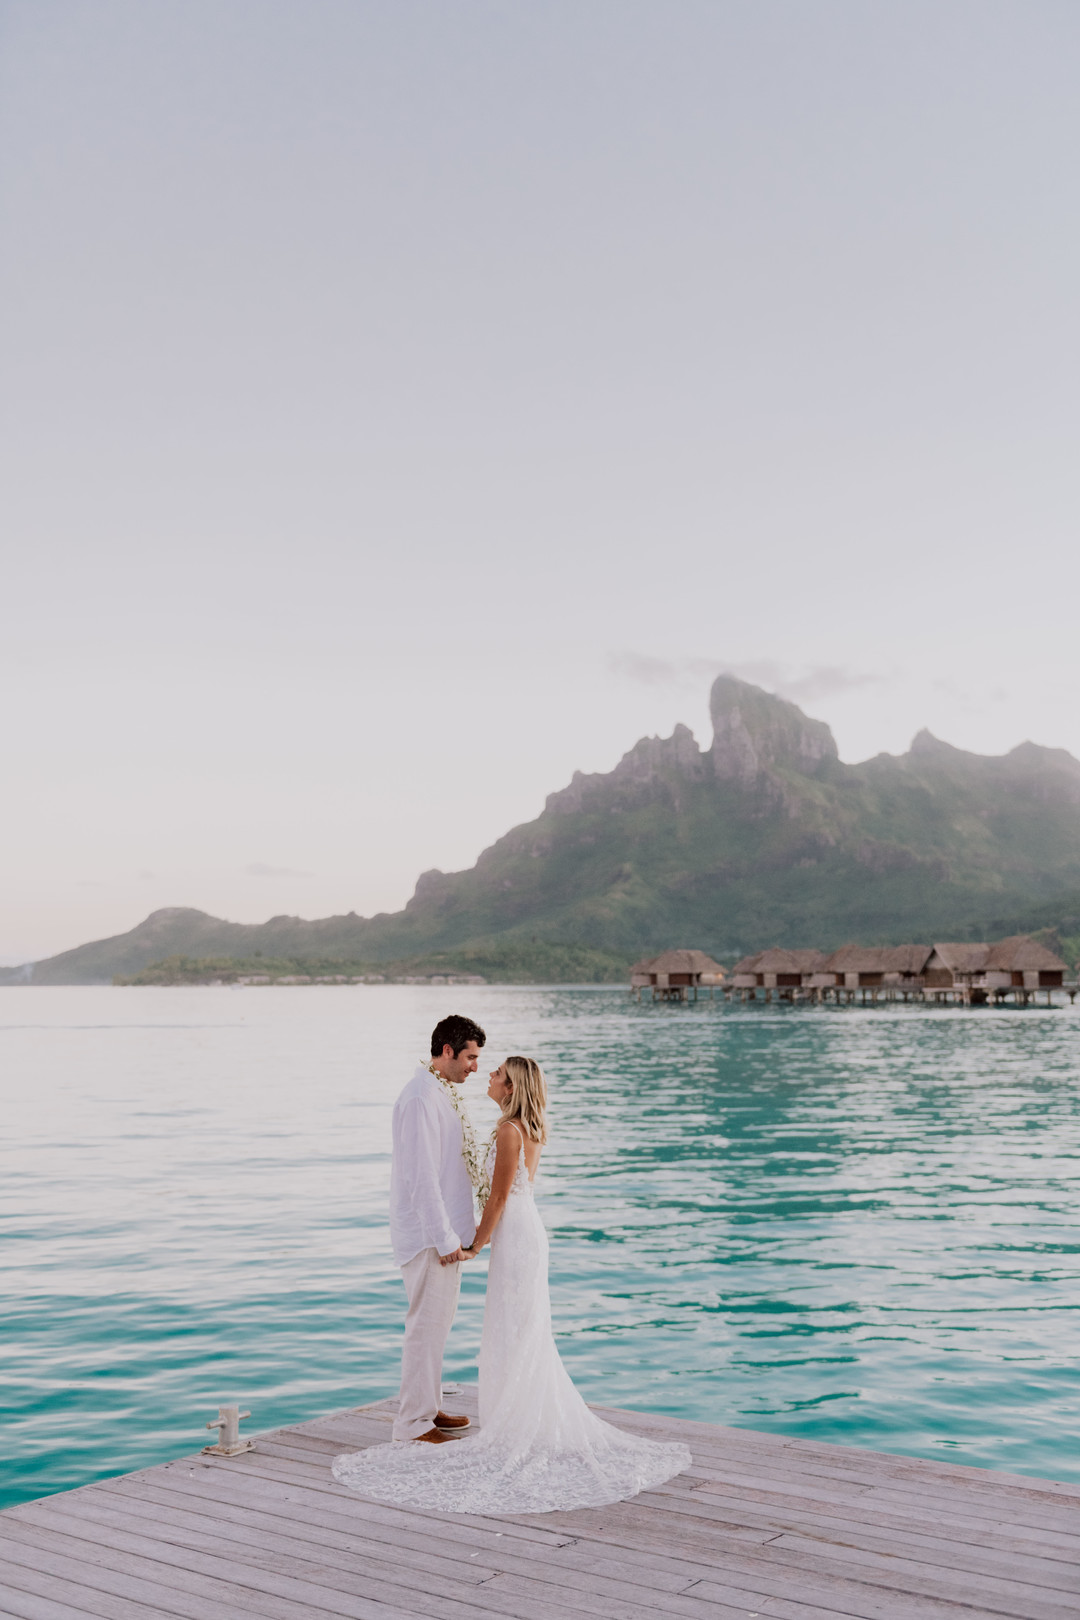 Couple destination wedding in Bora Bora on a dock by the ocean